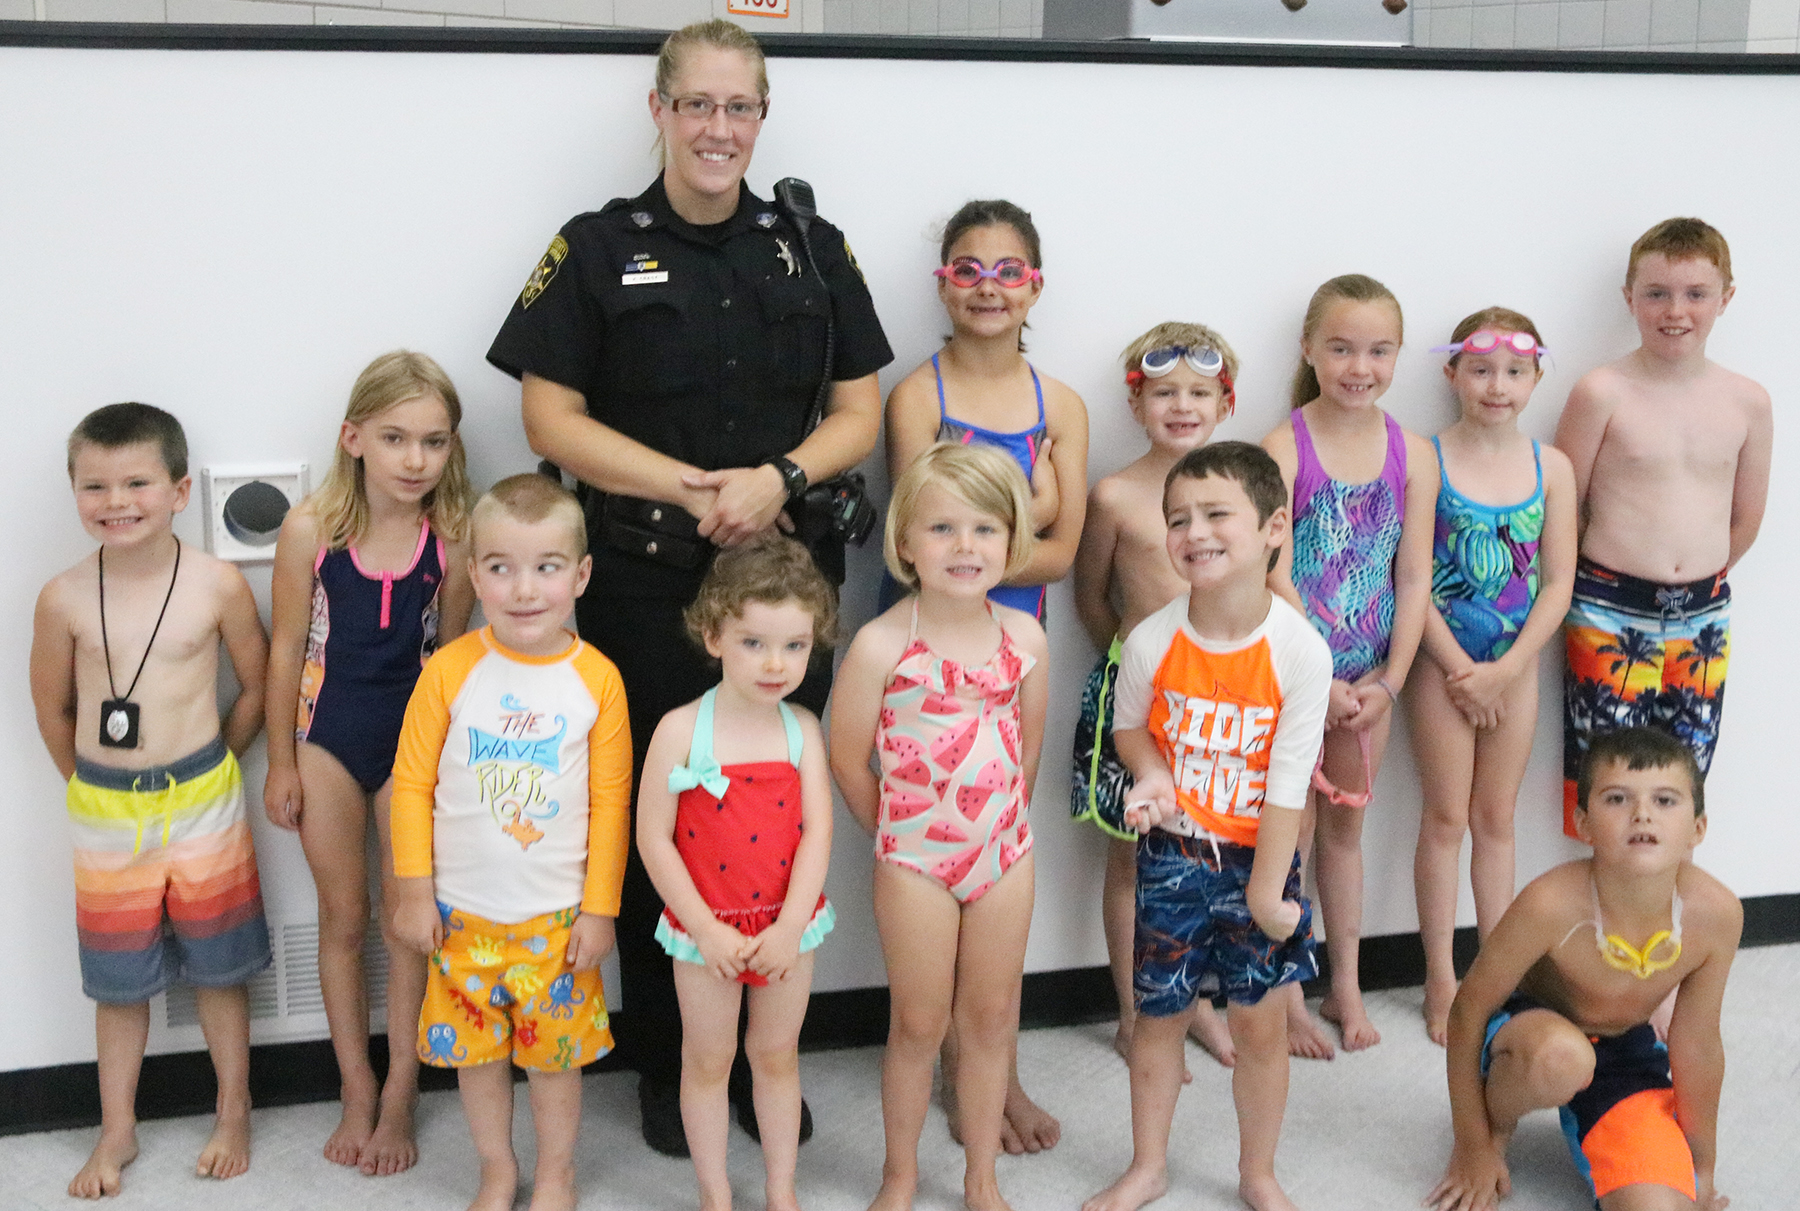 Female sheriff poses by the pool with children that were just swimming